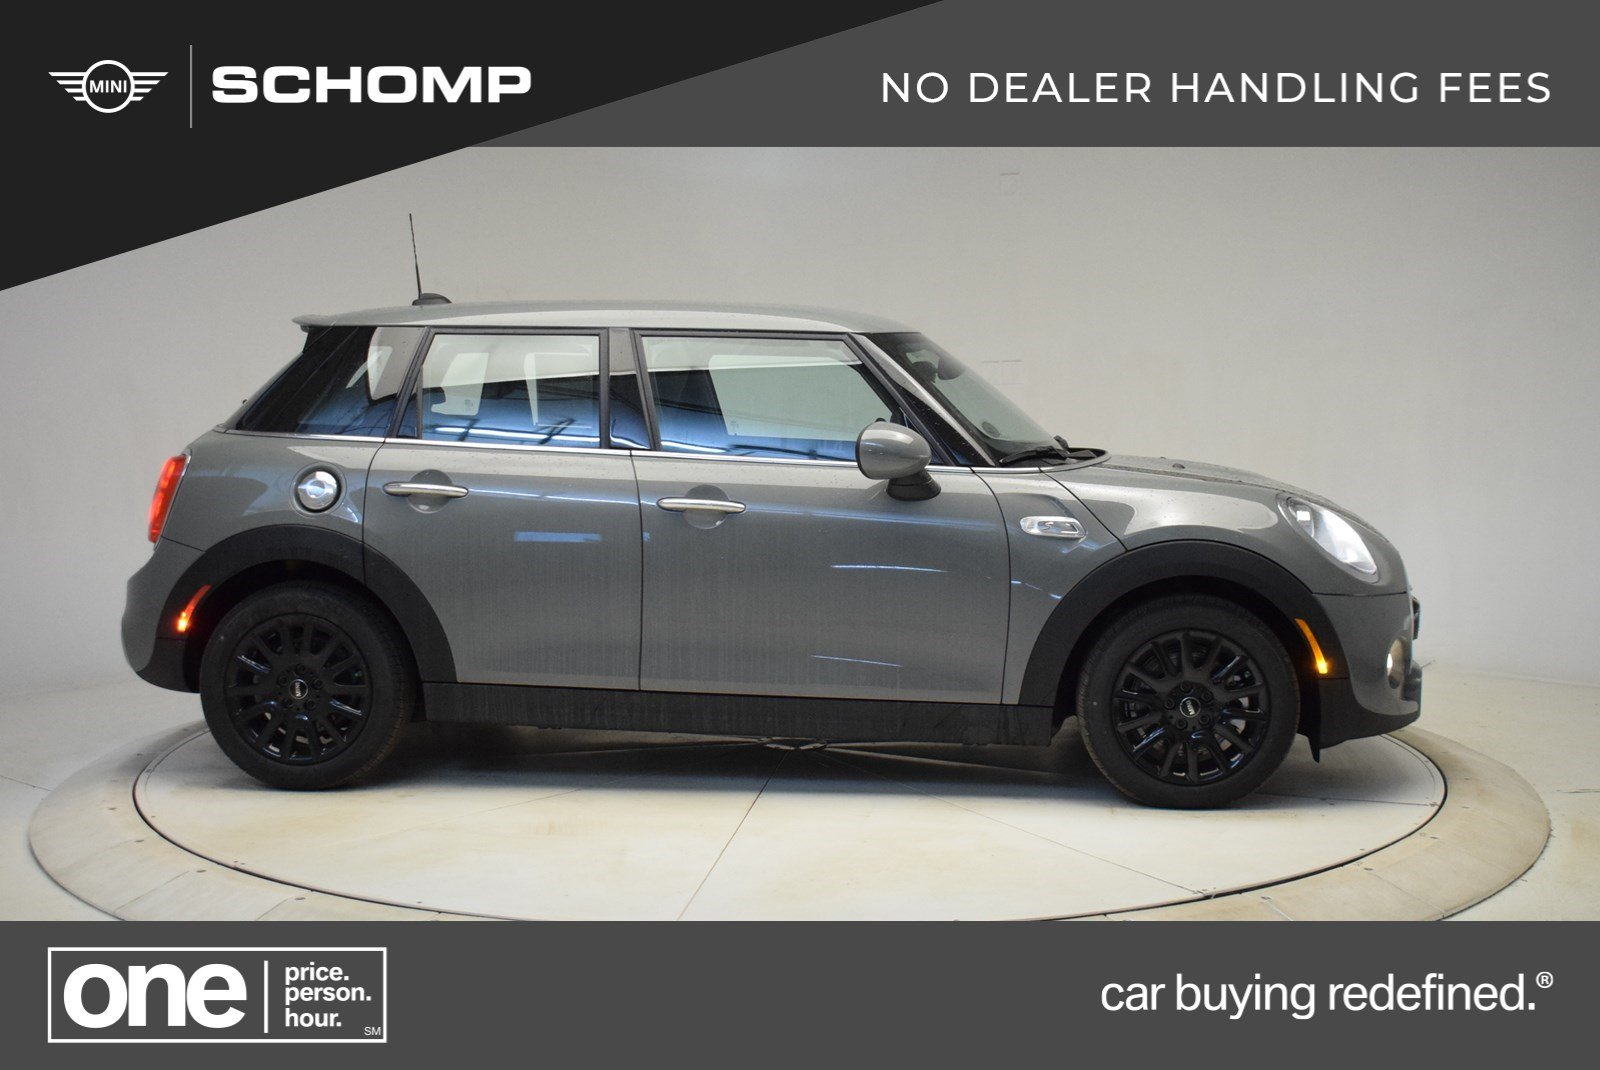 New 2019 Mini Hardtop 4 Door Cooper S Classic Fwd In Highlands Ranch